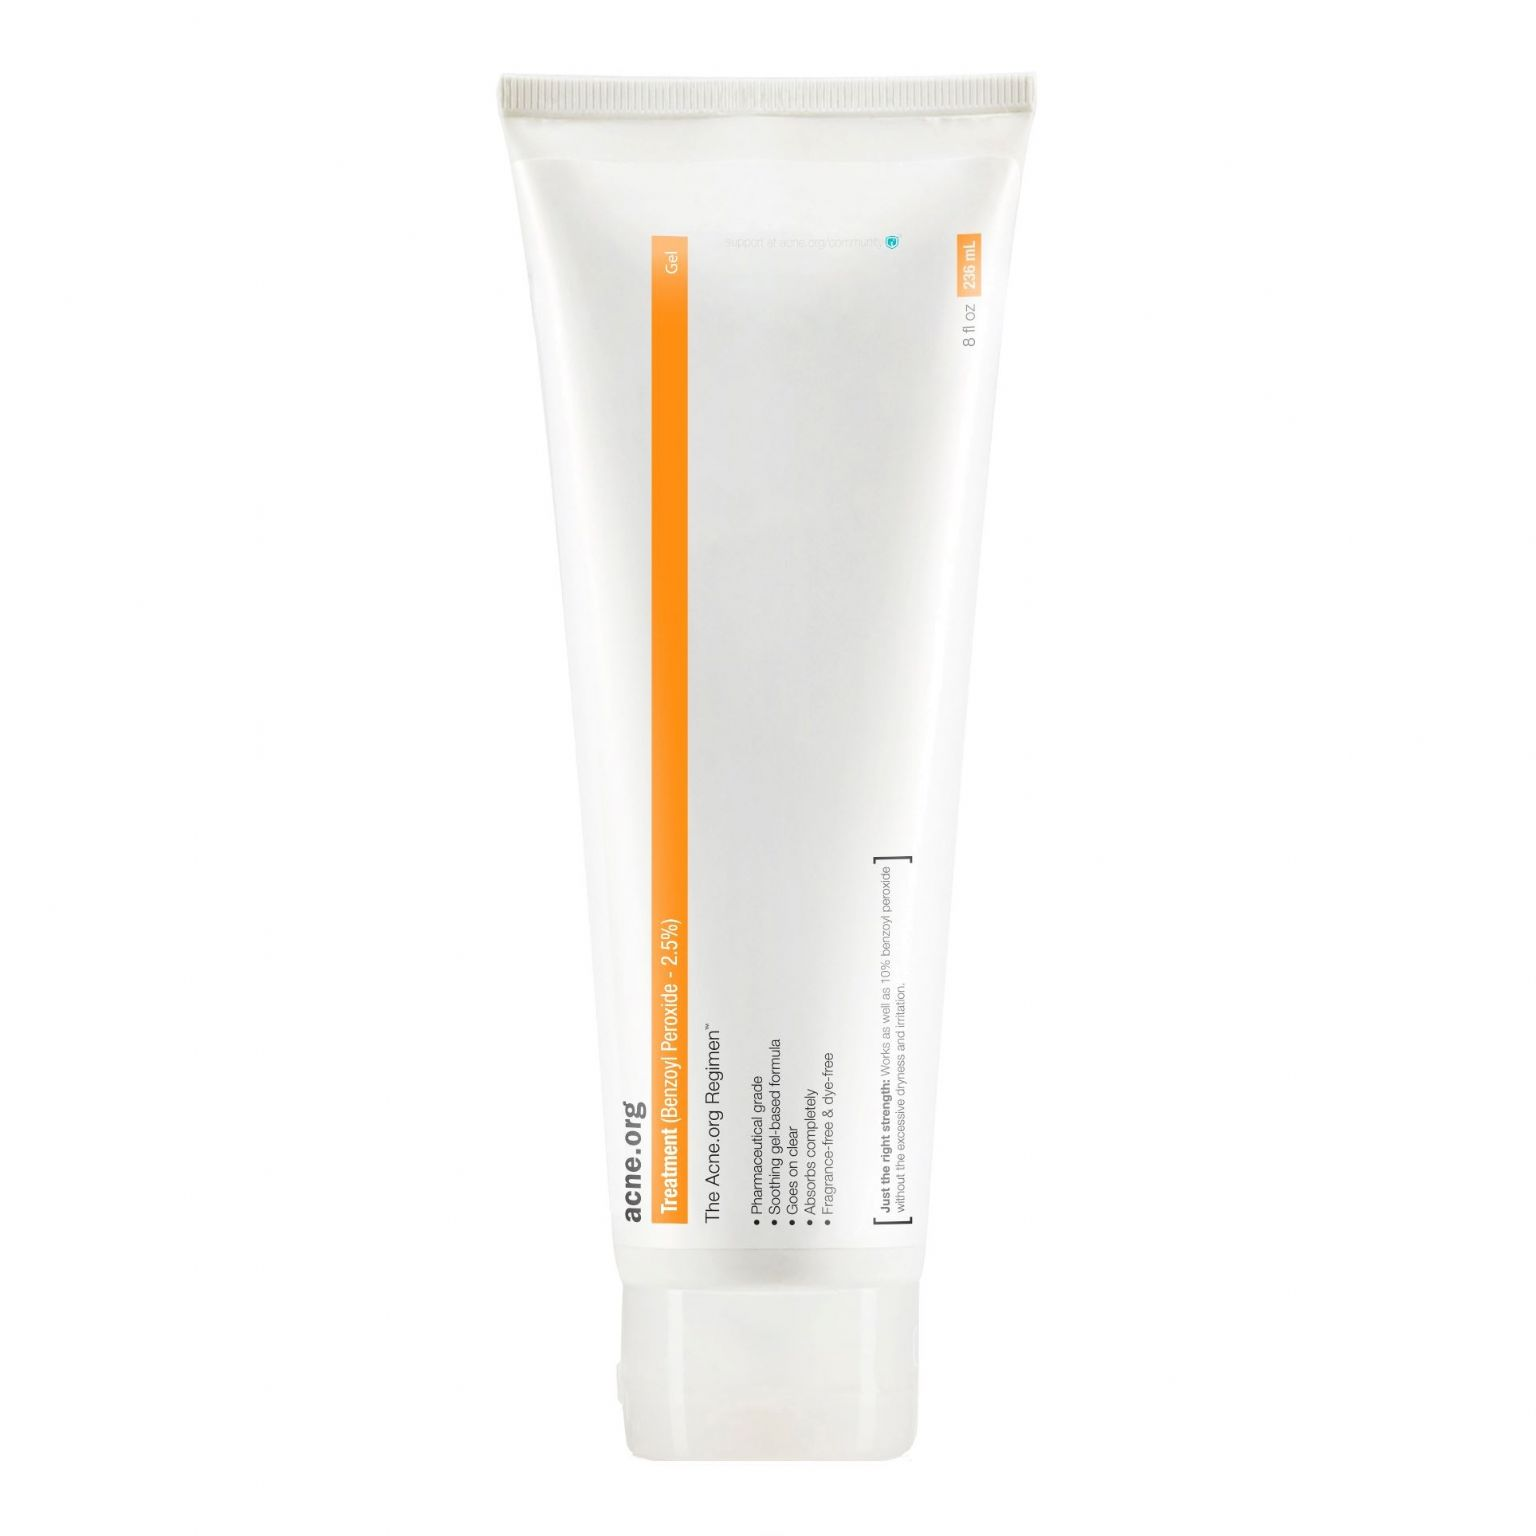 Treatment (Benzoyl Peroxide - 2.5%)